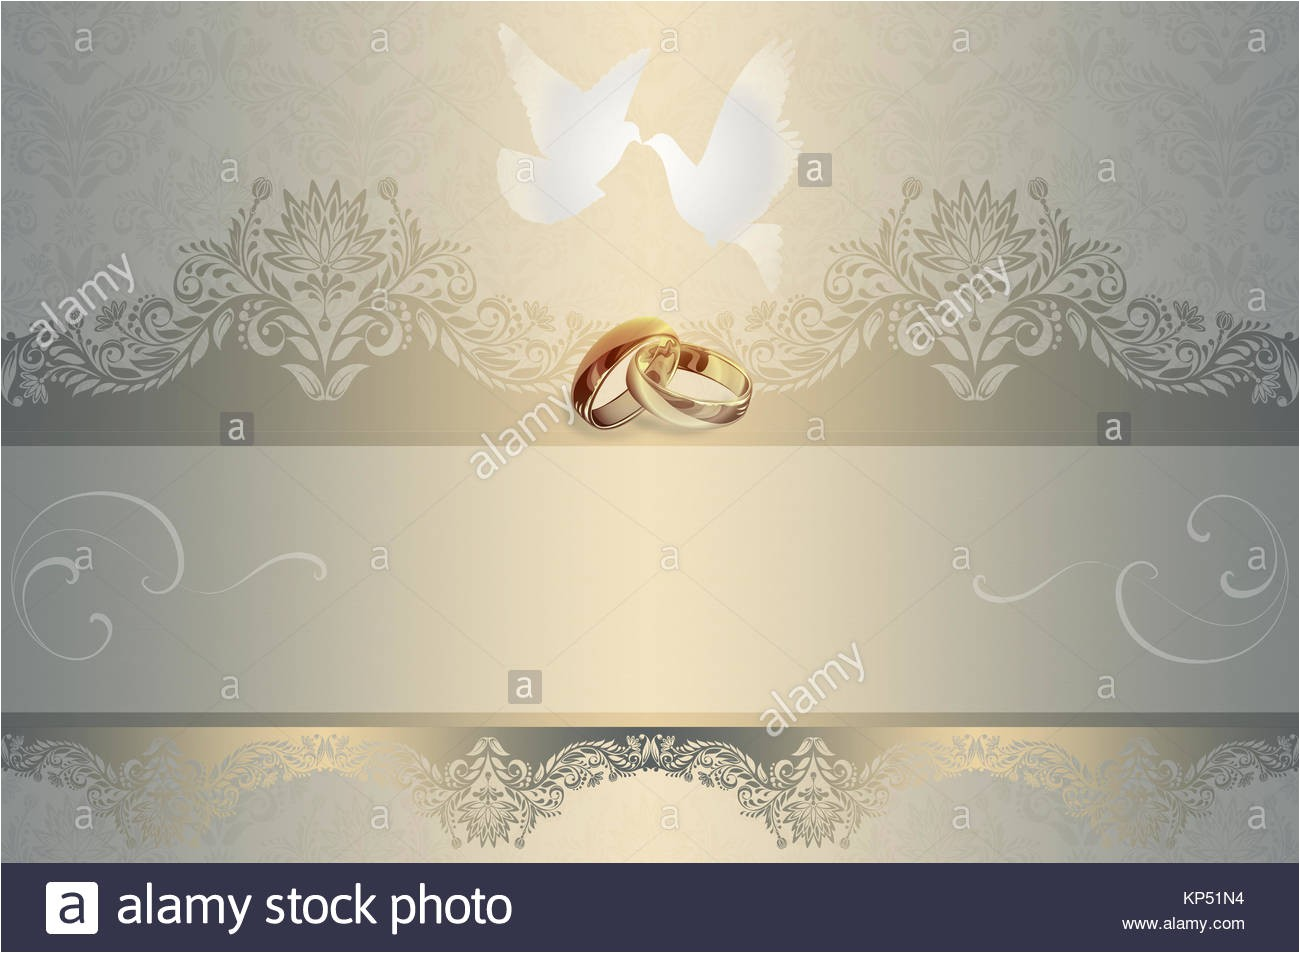 stock photo template of wedding invitation card with white doves and gold rings 168526880